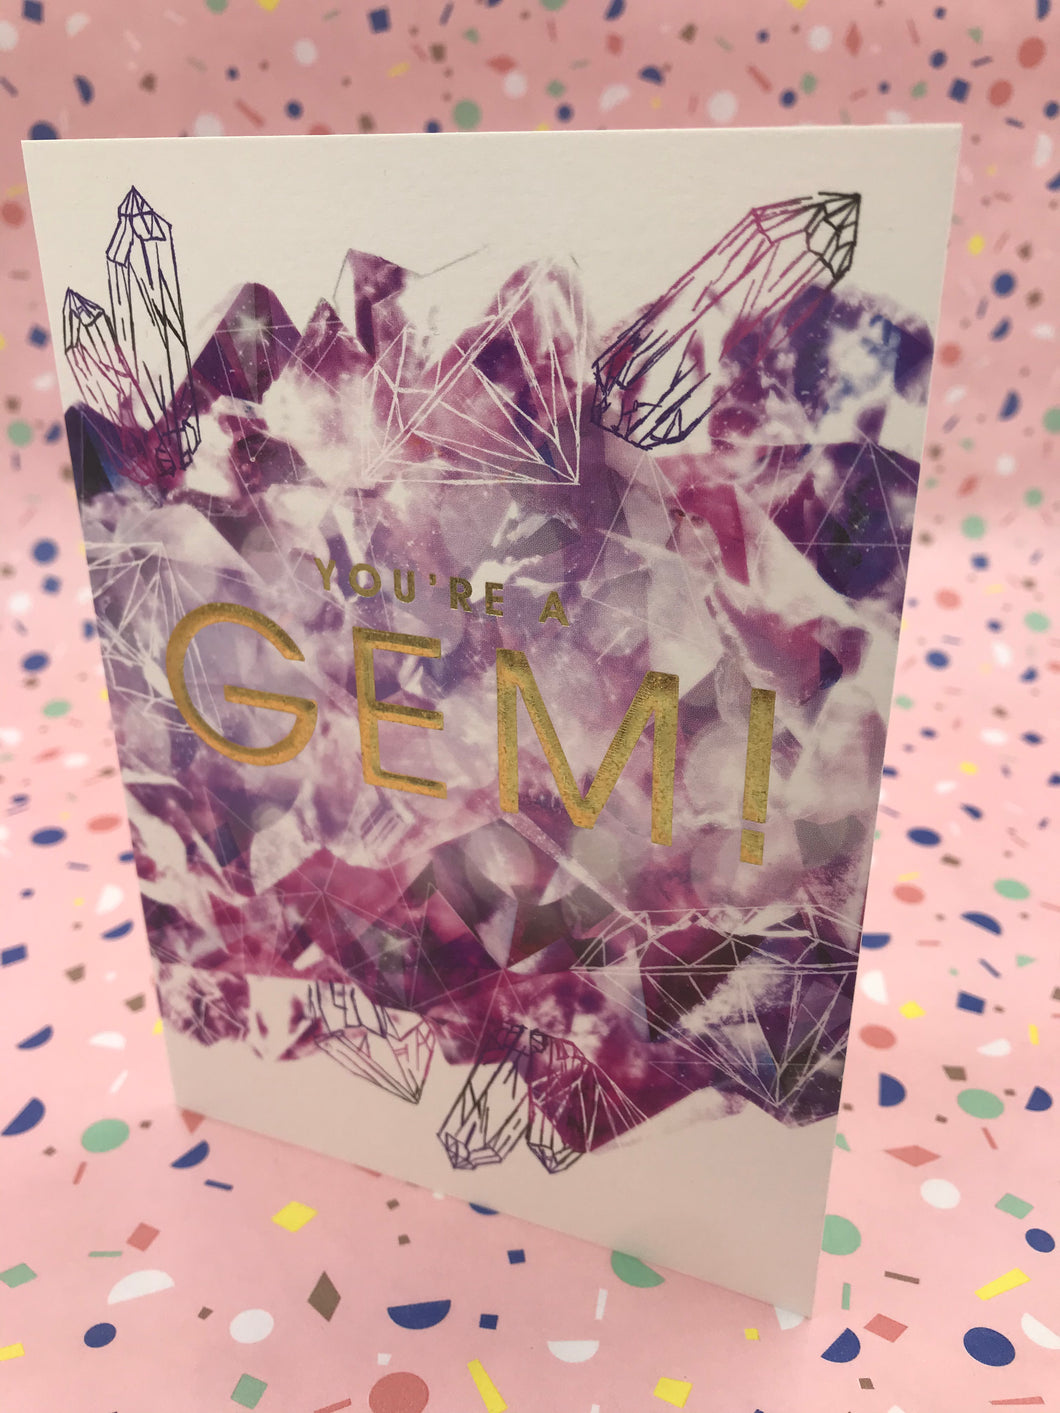 A geometric styled card with the words you're a gem